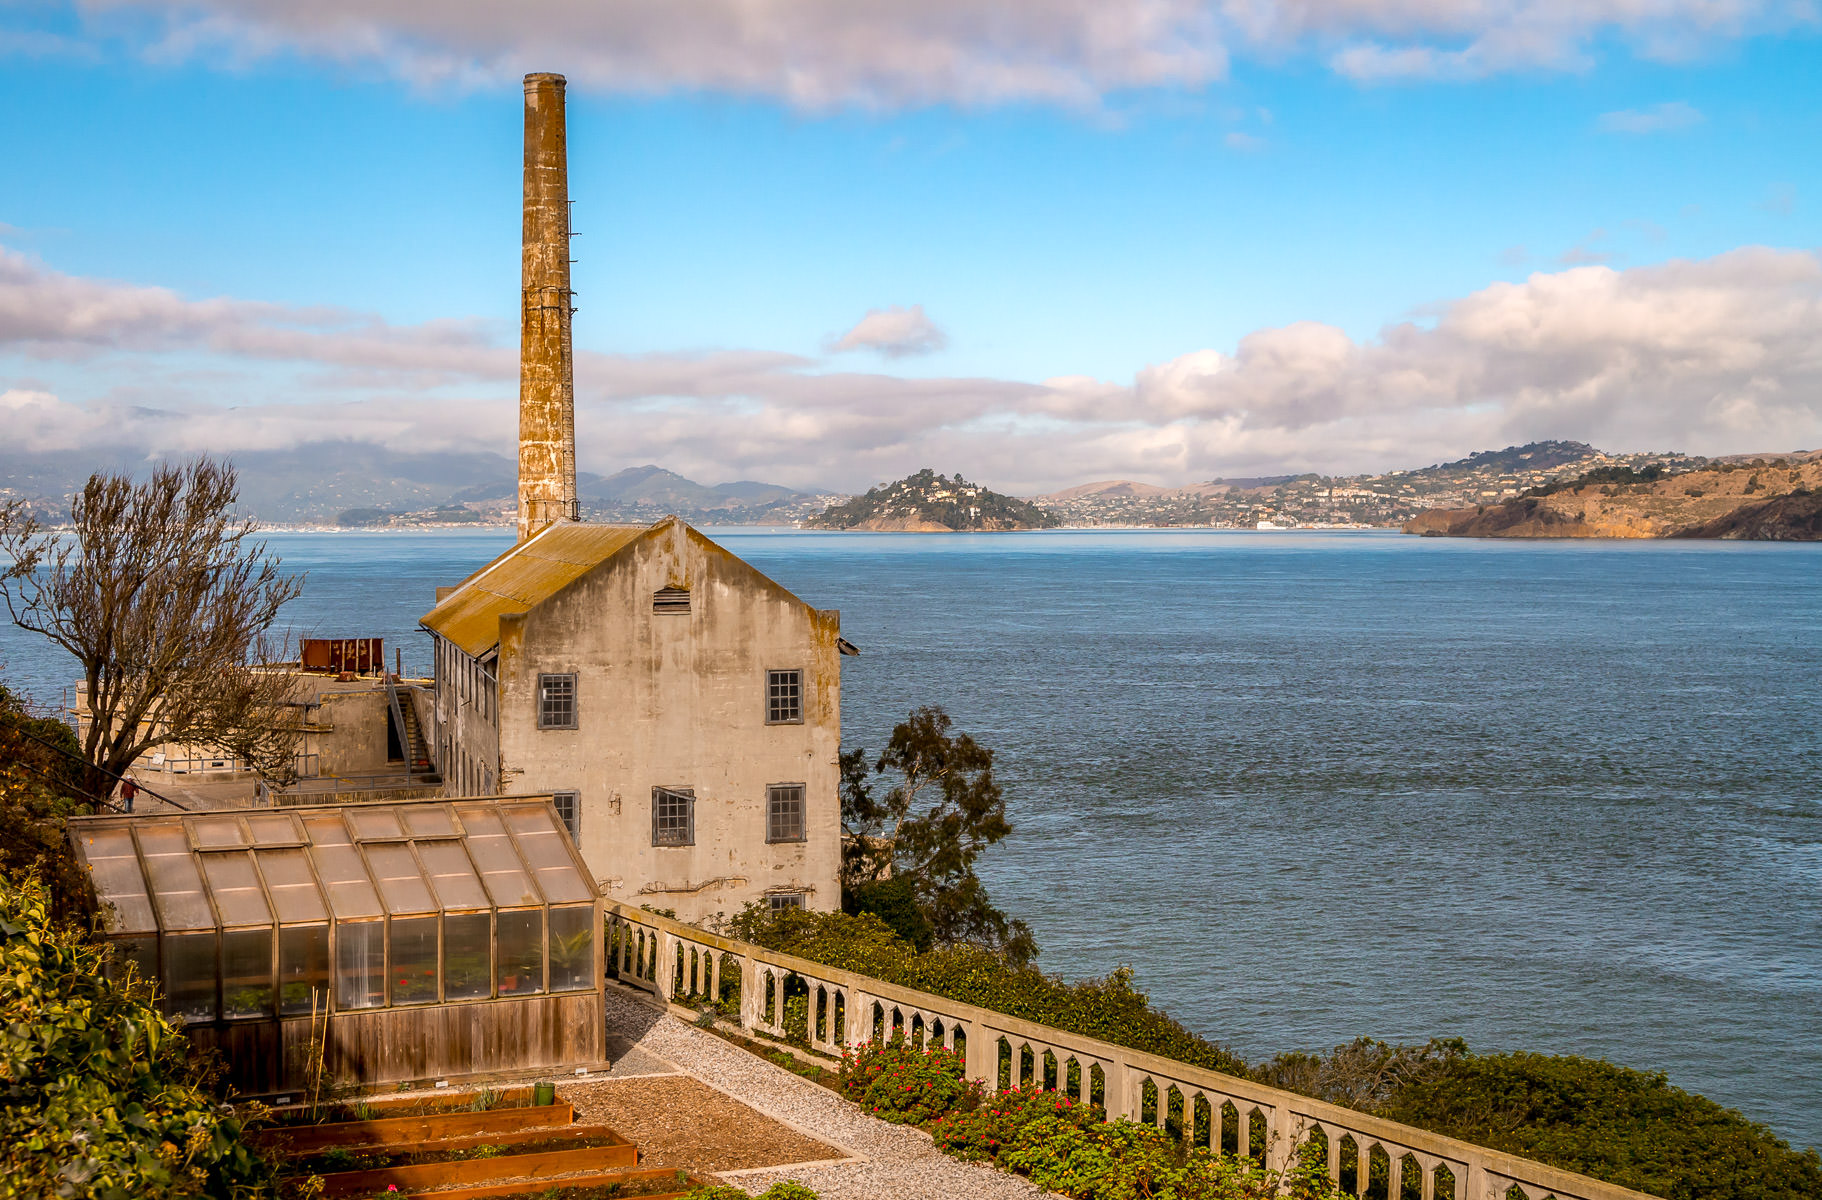 The smoke stack of the power house at Alcatraz Federal Penitentiary rises into the sky over San Francisco Bay.